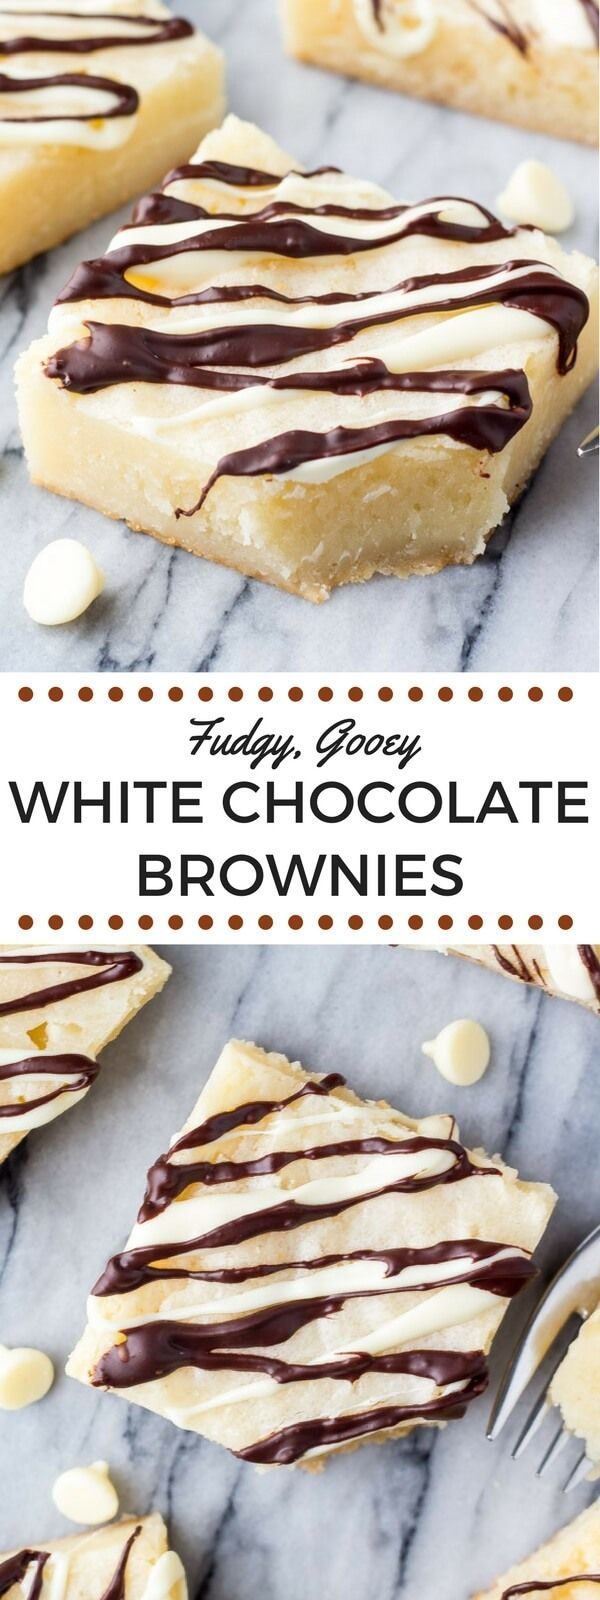 These super fudgy, gooey white chocolate brownies are made in one bowl and packed with delicious white chocolate. So decadent & so delicious: